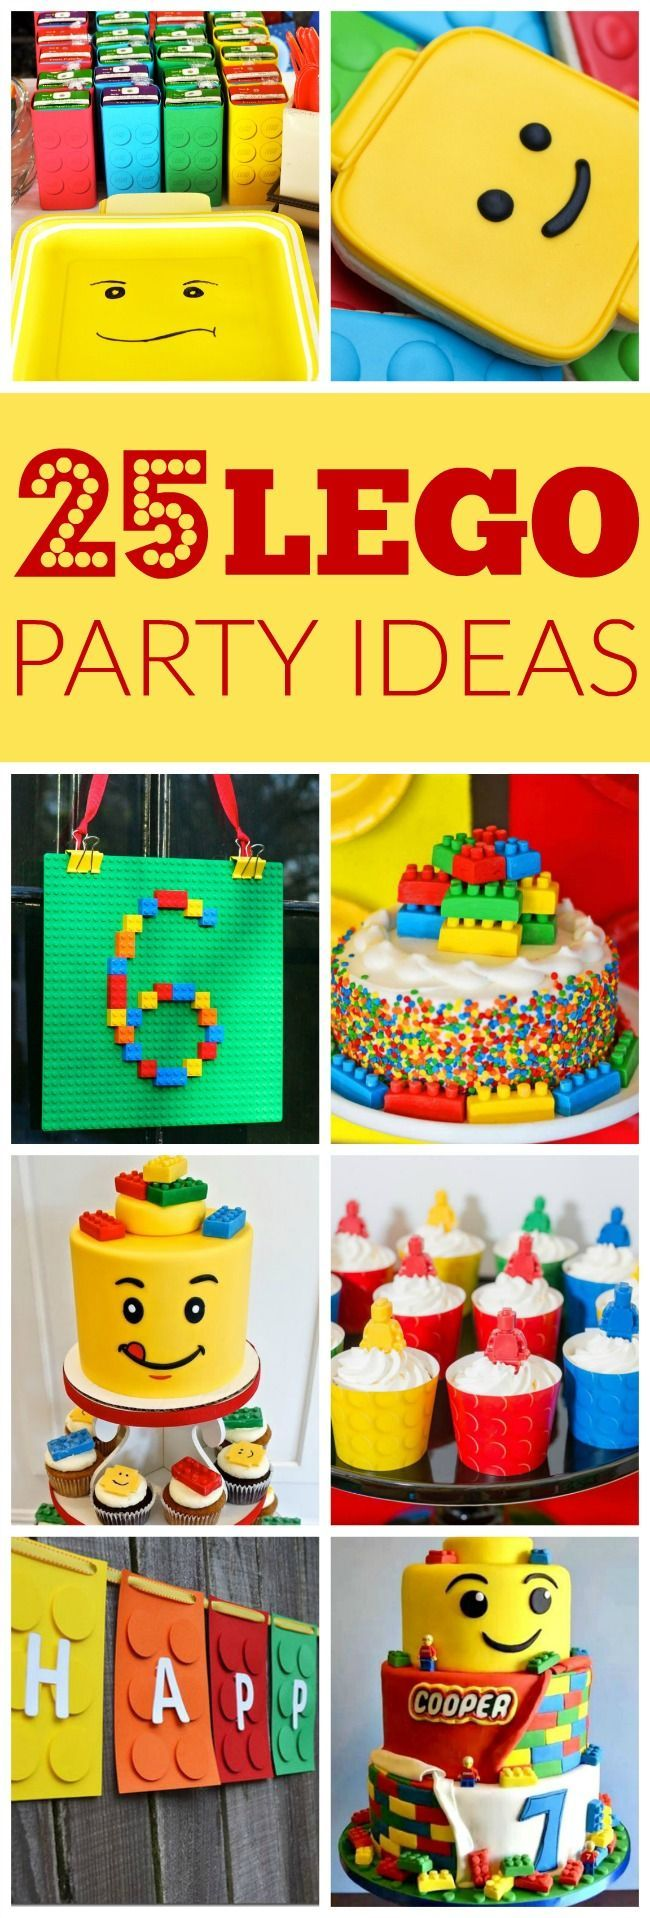 birthday activities for boys ; 67c76fe02dff5e5e981b657795266217--lego-themed-party-themed-parties